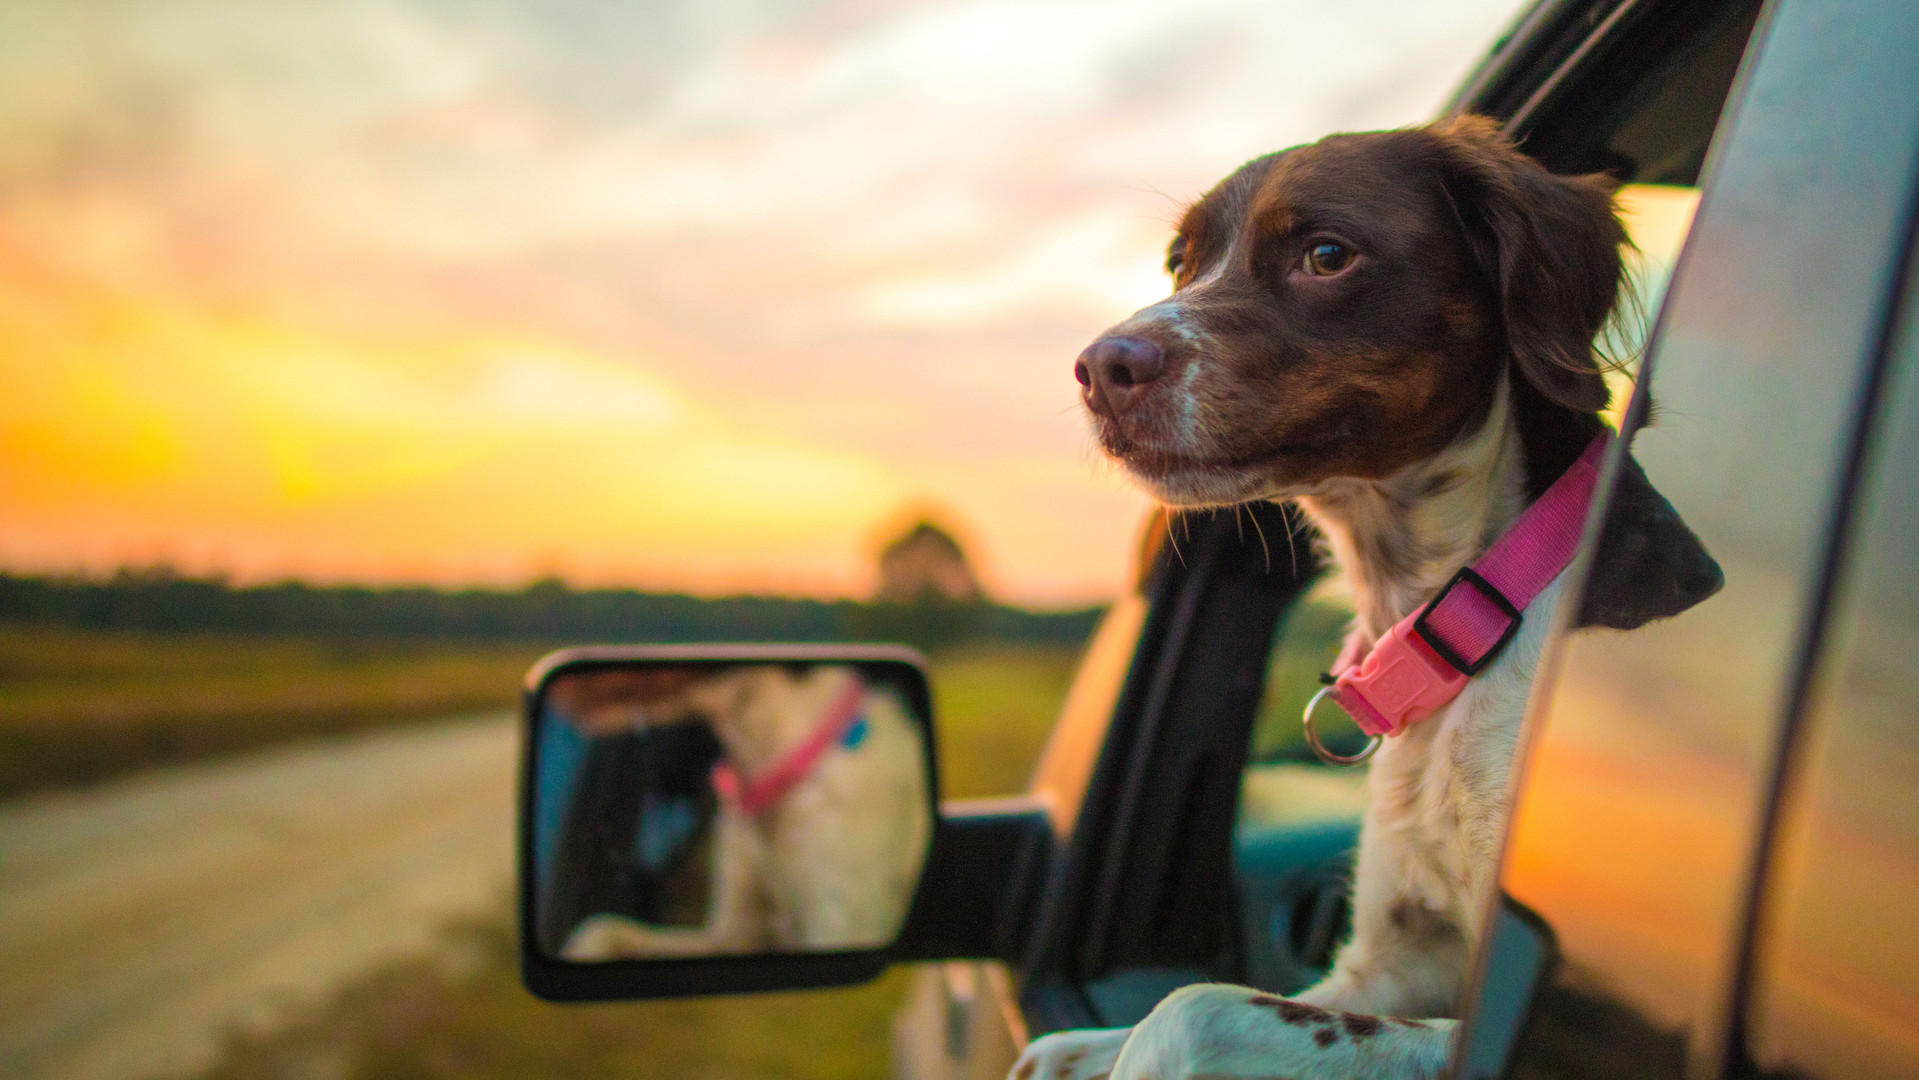 Dog-Out-Window-Truck-iStock-1094506862.j